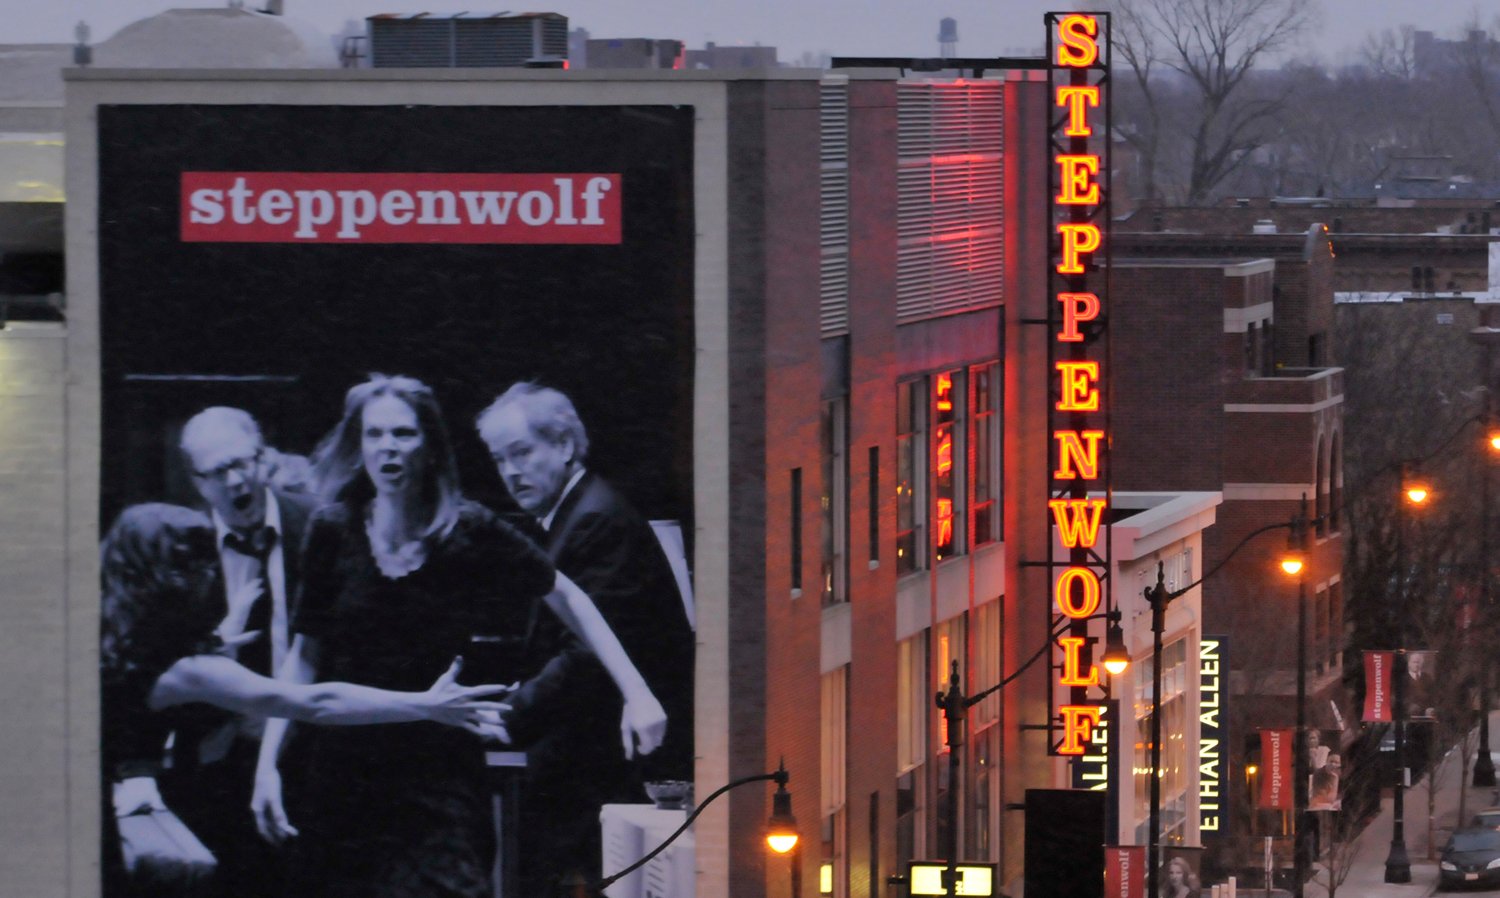 Steppenwolf Theatre exterior